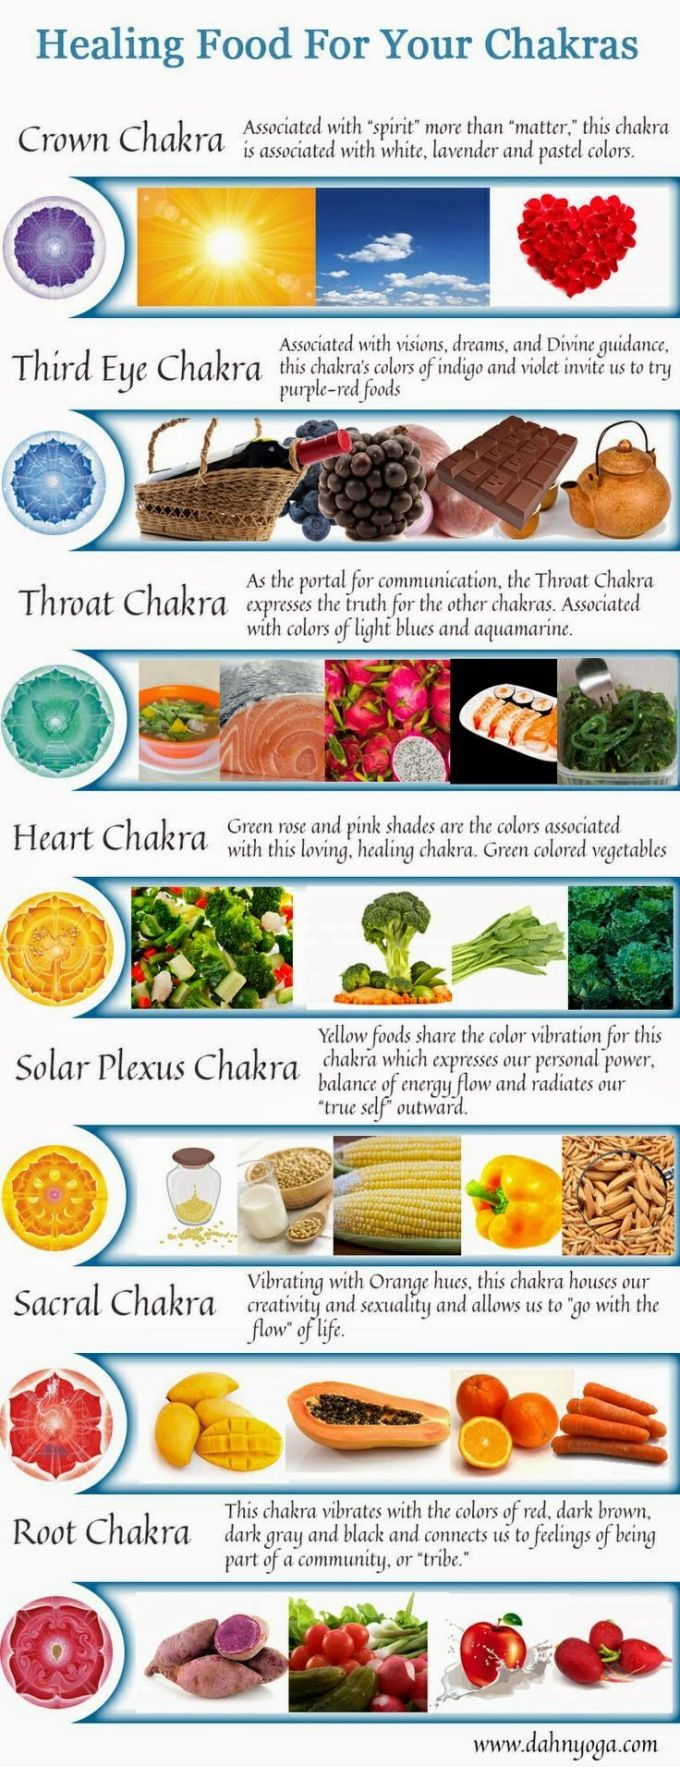 A Colorful Chart Of Food For Your Chakras | Feng Shui Energy | The Tao of Dana